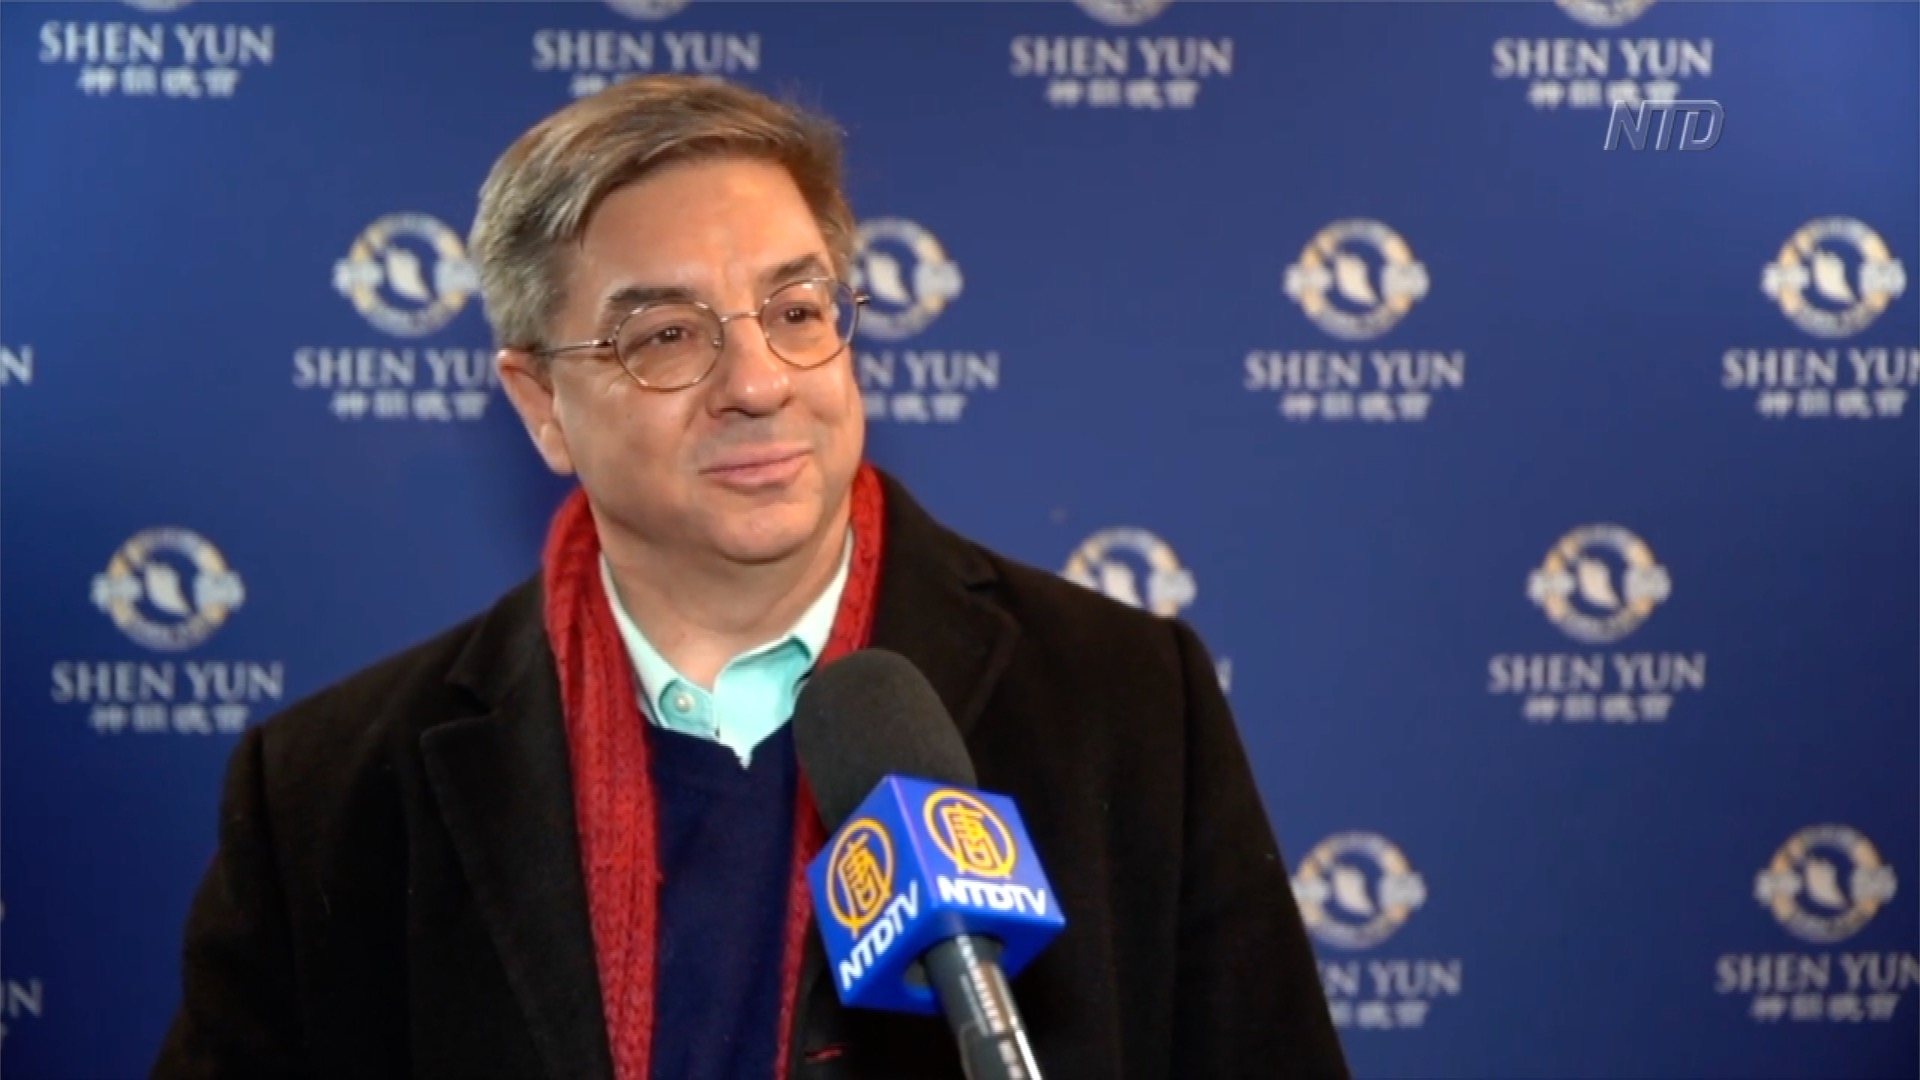 Shen Yun, a Message of Hope for the Chinese People